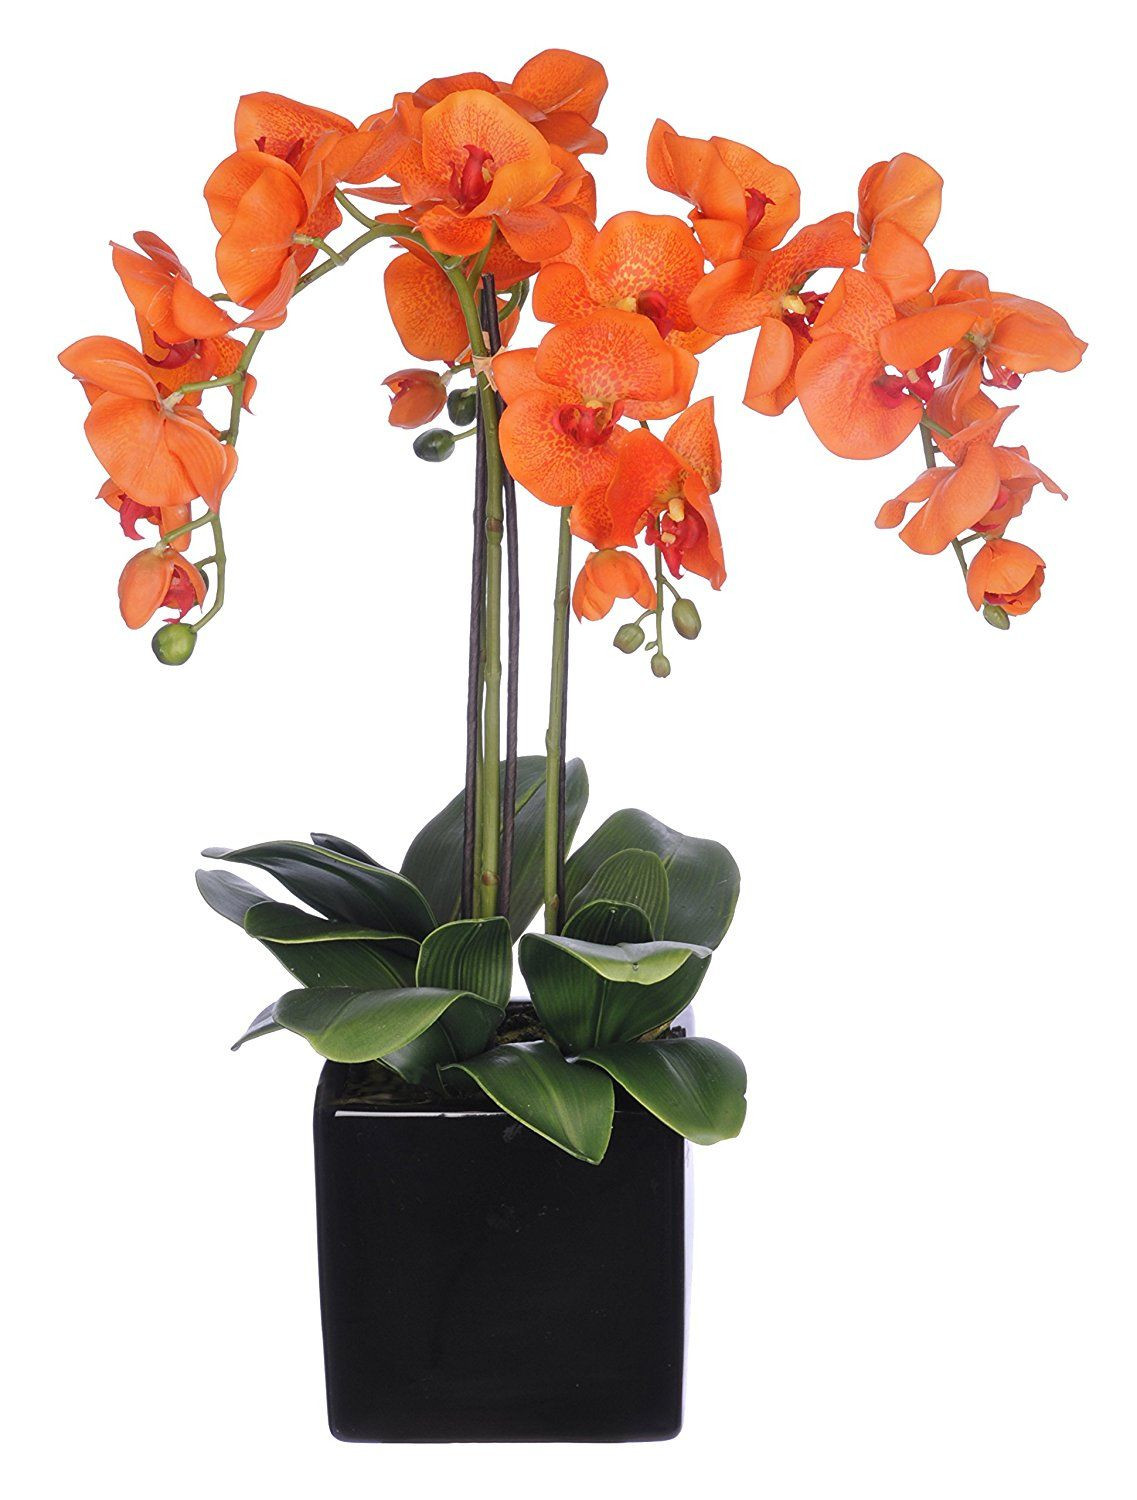 flower vase with artificial flowers online shopping of amazon com house of silk flowers artificial triple stem all with regard to amazon com house of silk flowers artificial triple stem